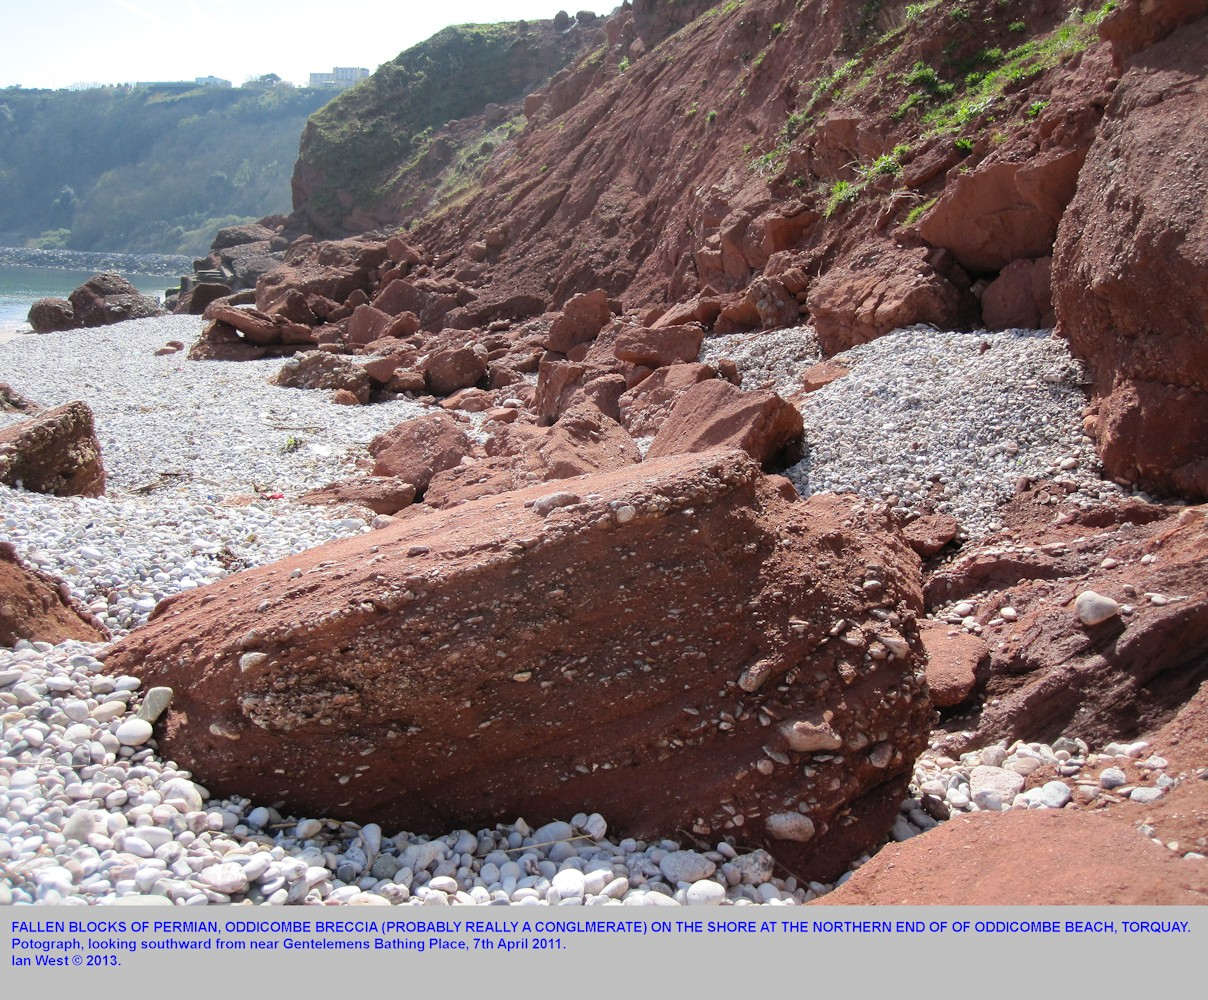 Fallen blocks of Oddicombe Breccia, perhaps really a conflomerate, at the northern end end of Oddicombe Beach, Torquay, Devon, 7th April 2011